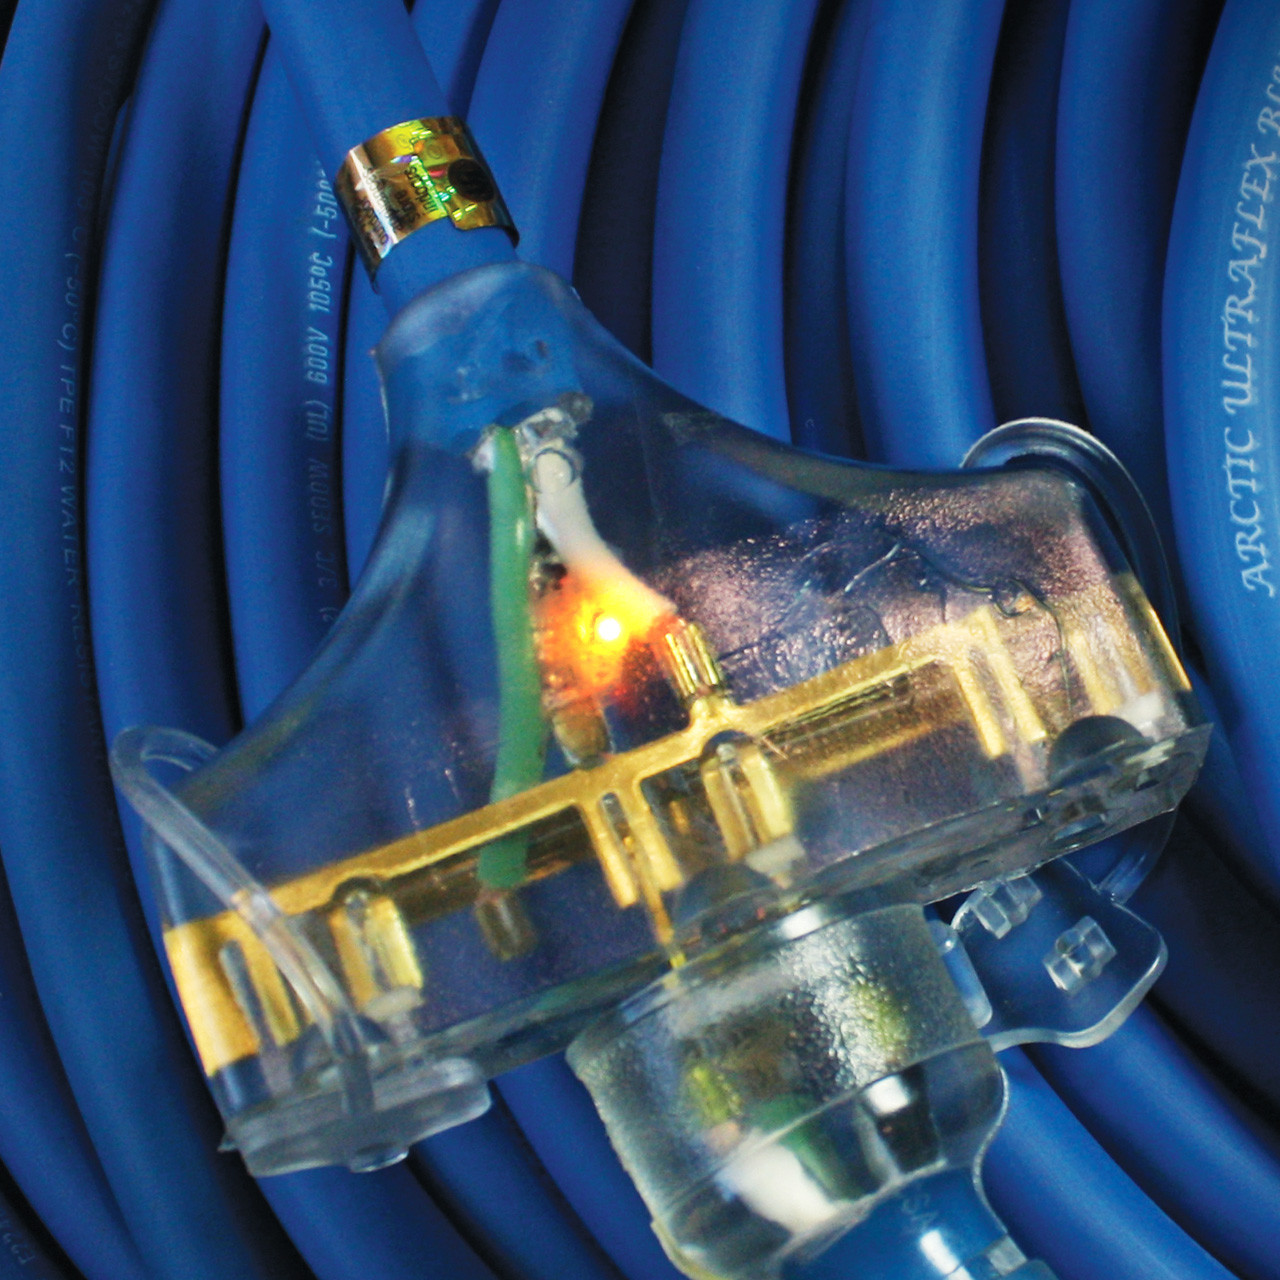 Polar Wire extension cords light when energized for instant power verification